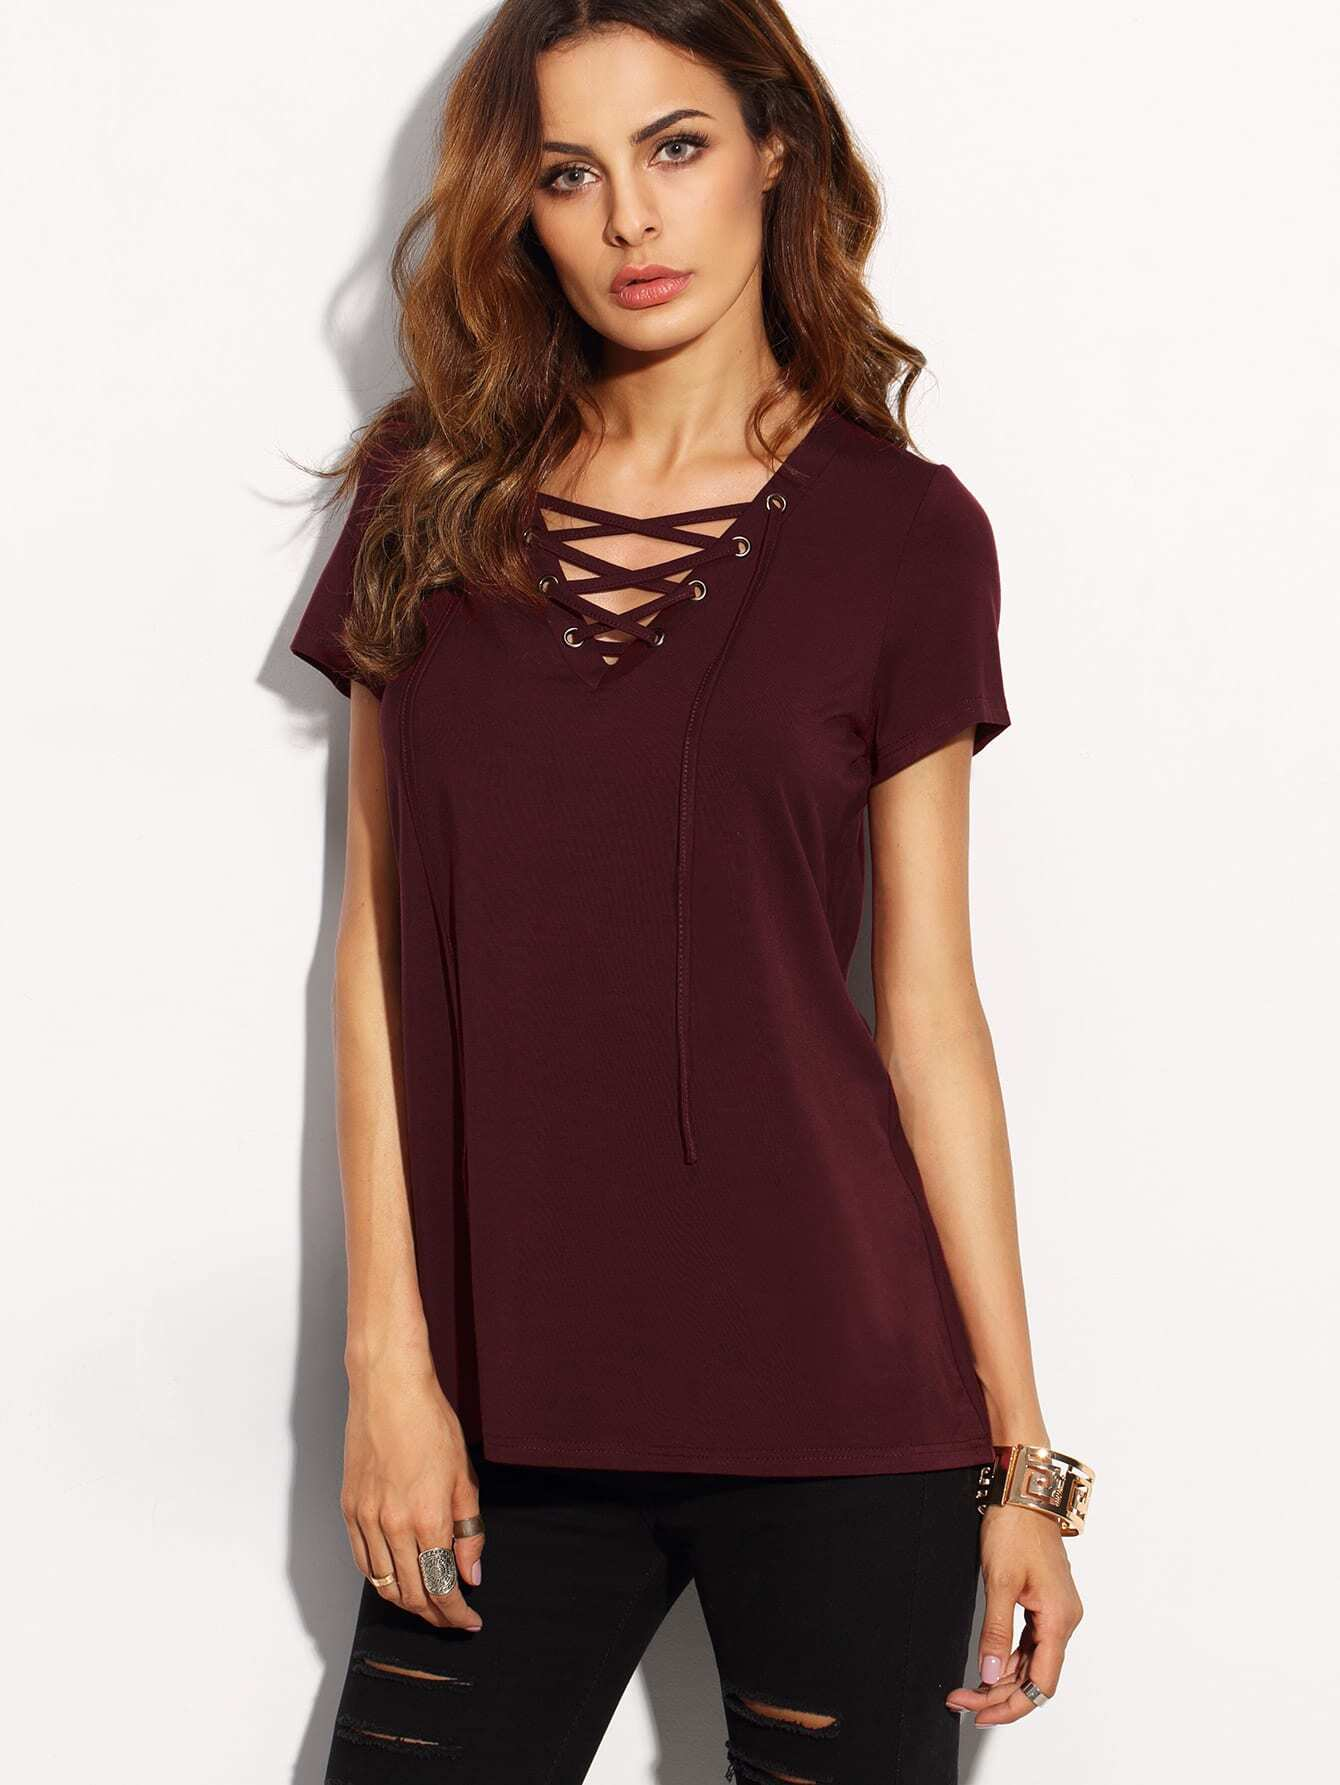 Burgundy Lace Up Front V Neck Short Sleeve T-shirt